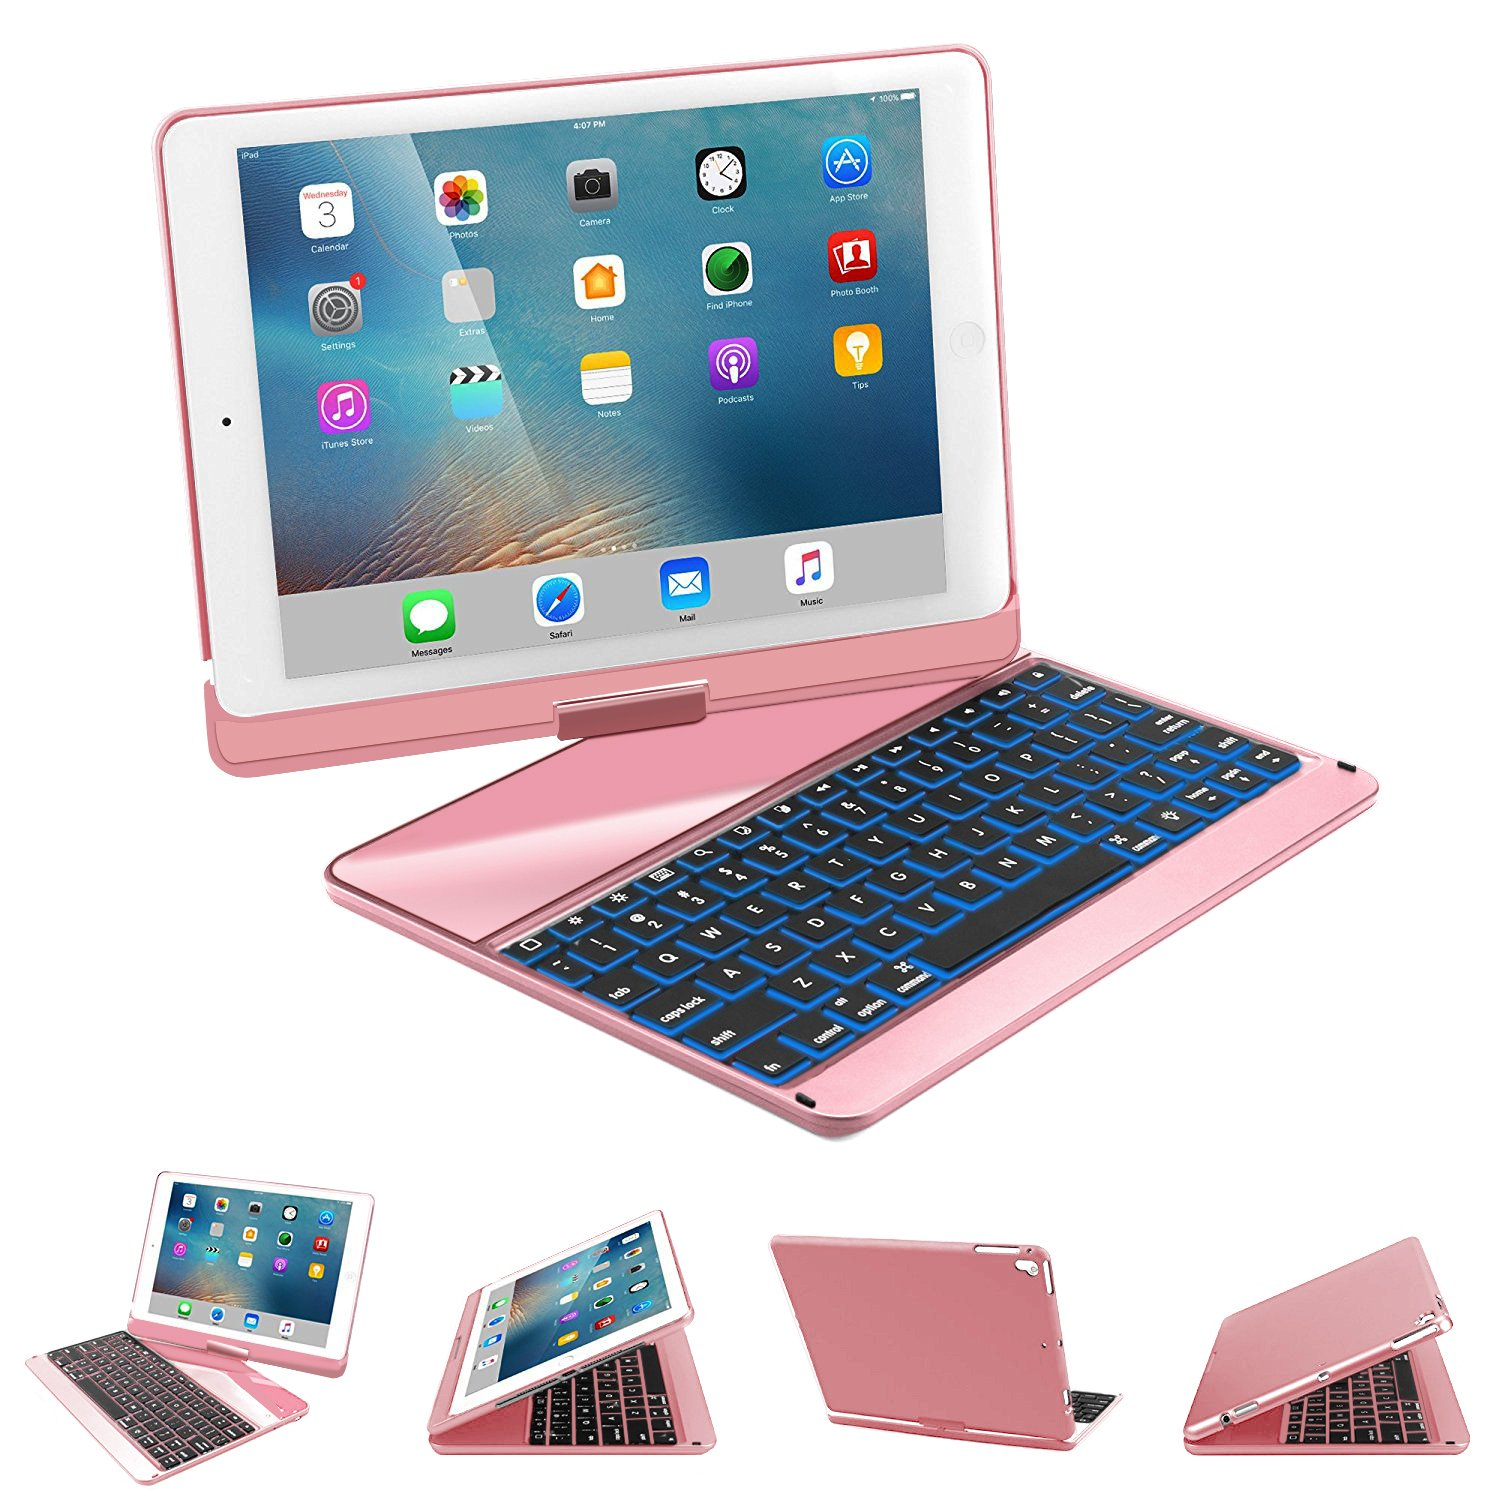 iPad 9.7 Keyboard Case, SENGBIRCH 7 Colors Backlit Bluetooth Keyboard Case Folio Smart 360 Rotate Stand Cover for iPad Air, iPad Air 2, iPad pro 9.7, iPad 9.7 2017/2018 Tablet, Rose Gold